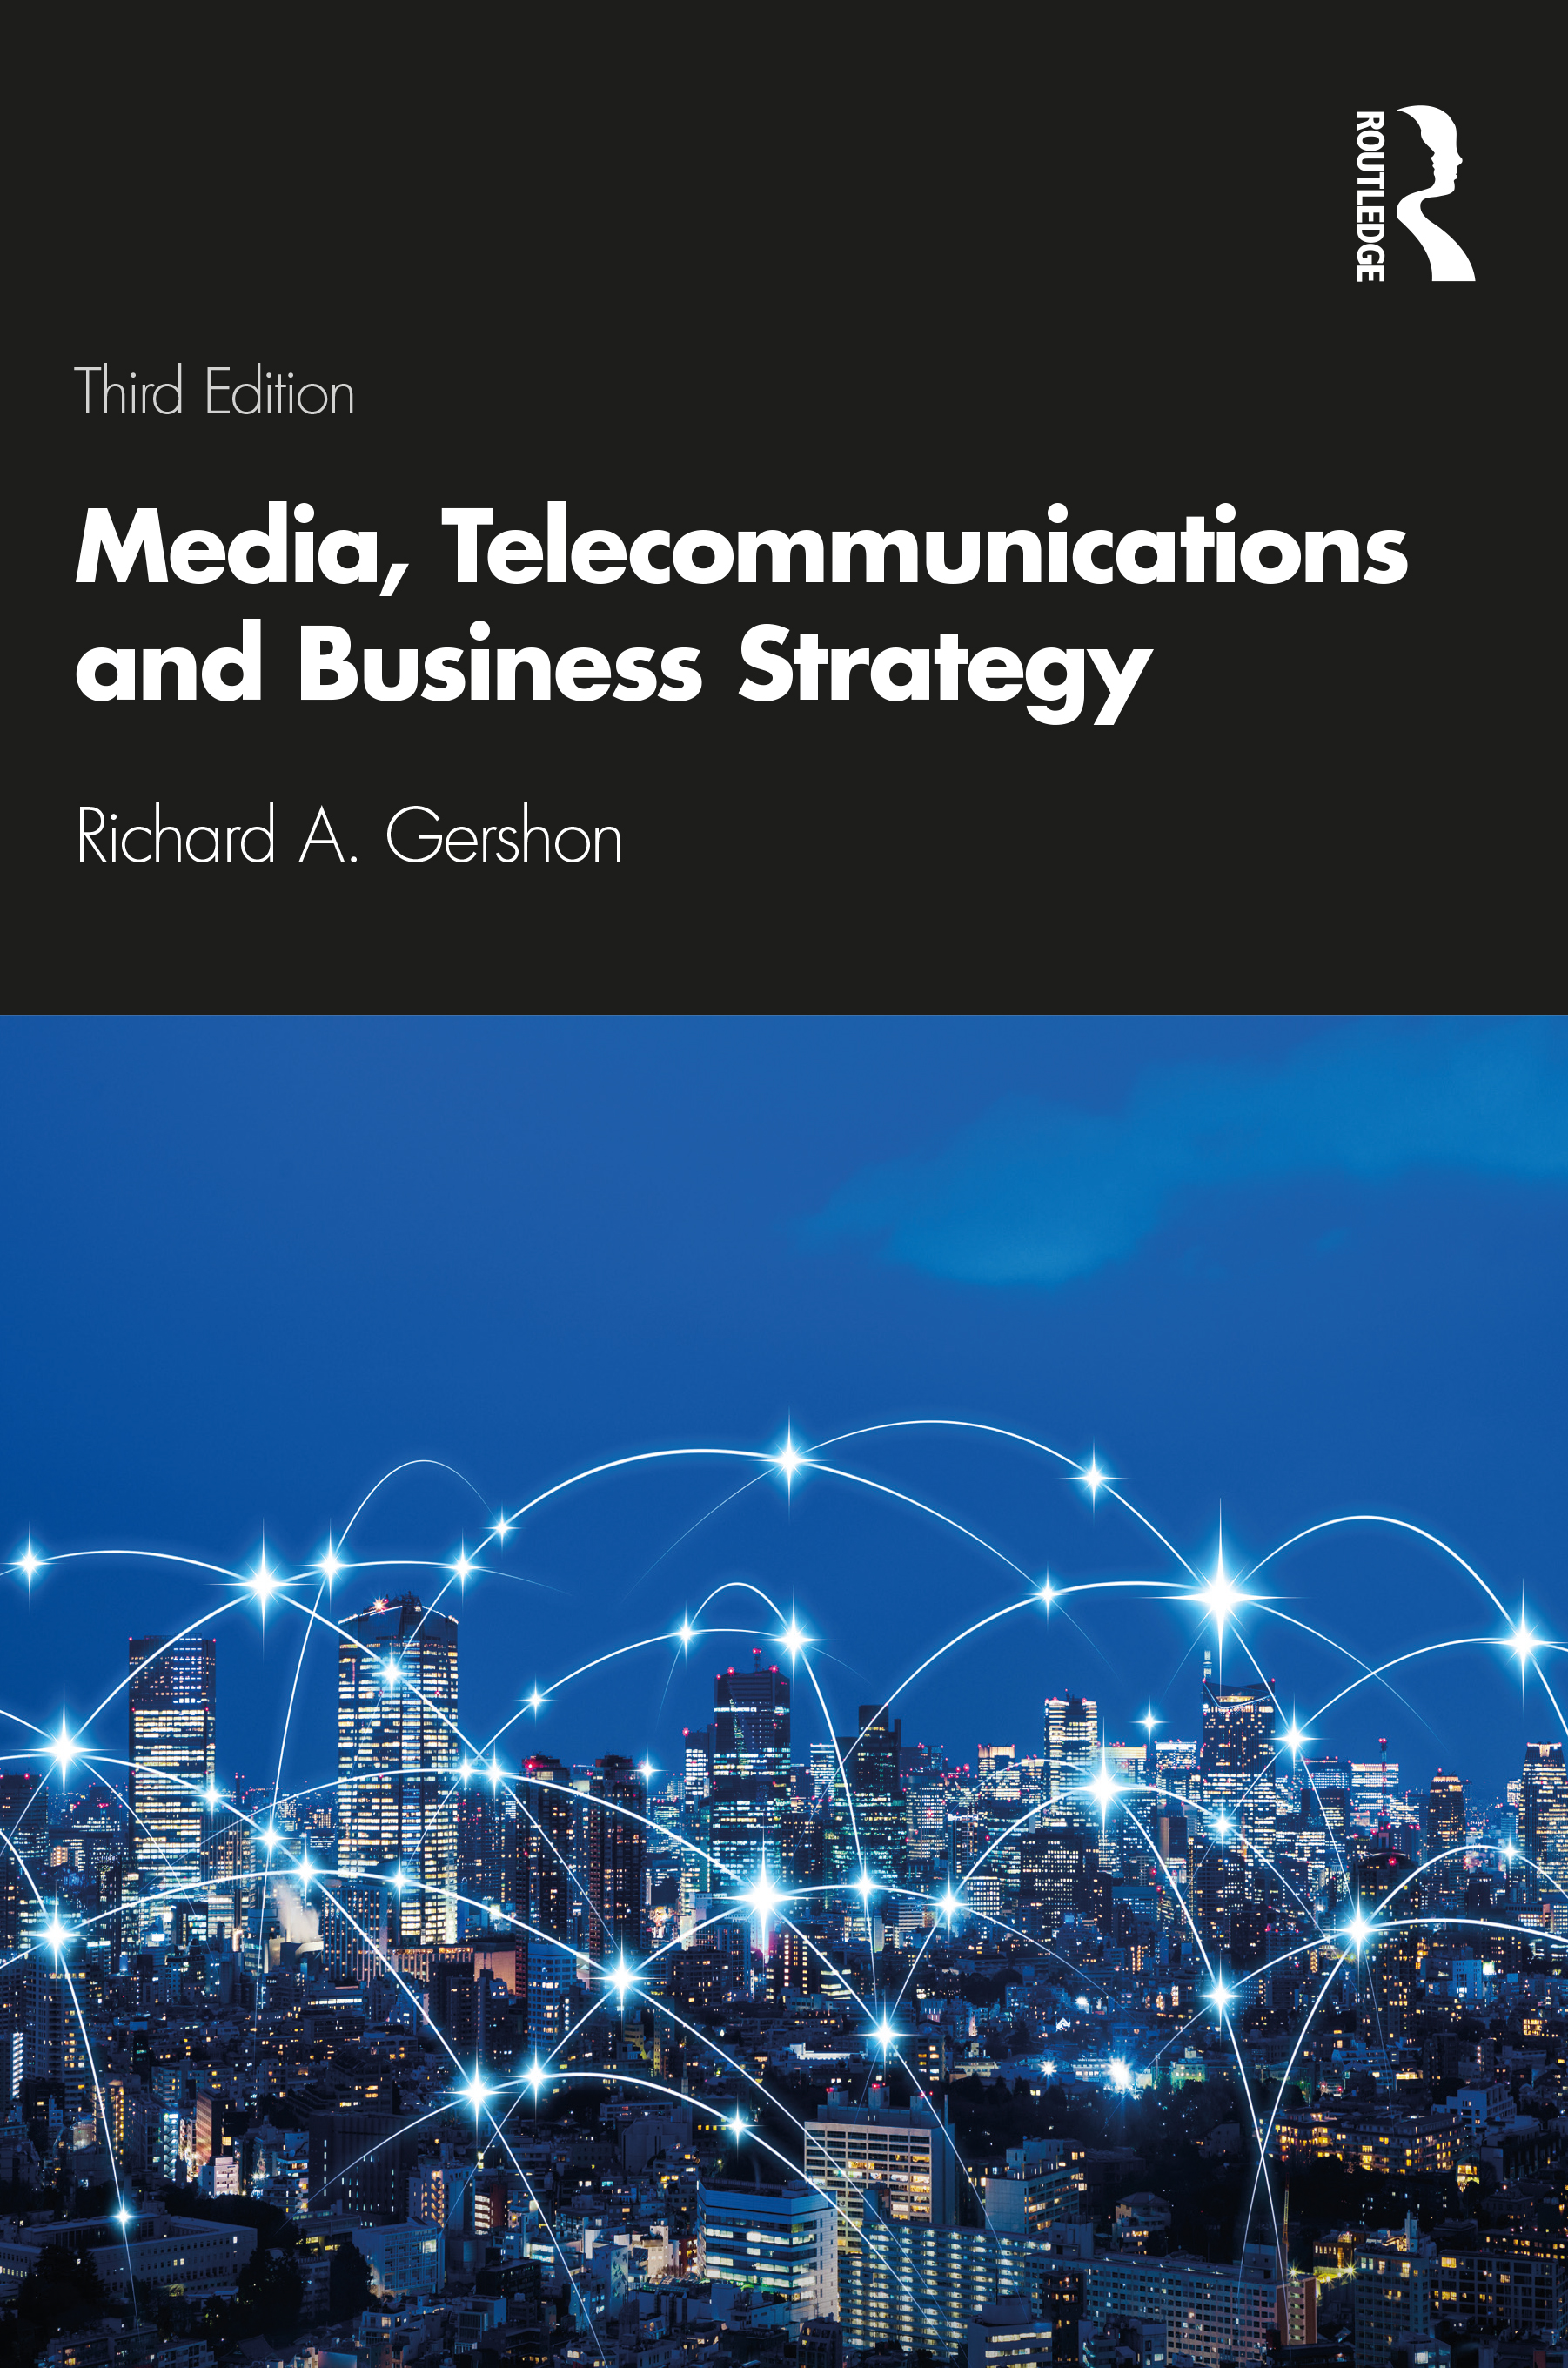 Media, Telecommunications and Business Strategy